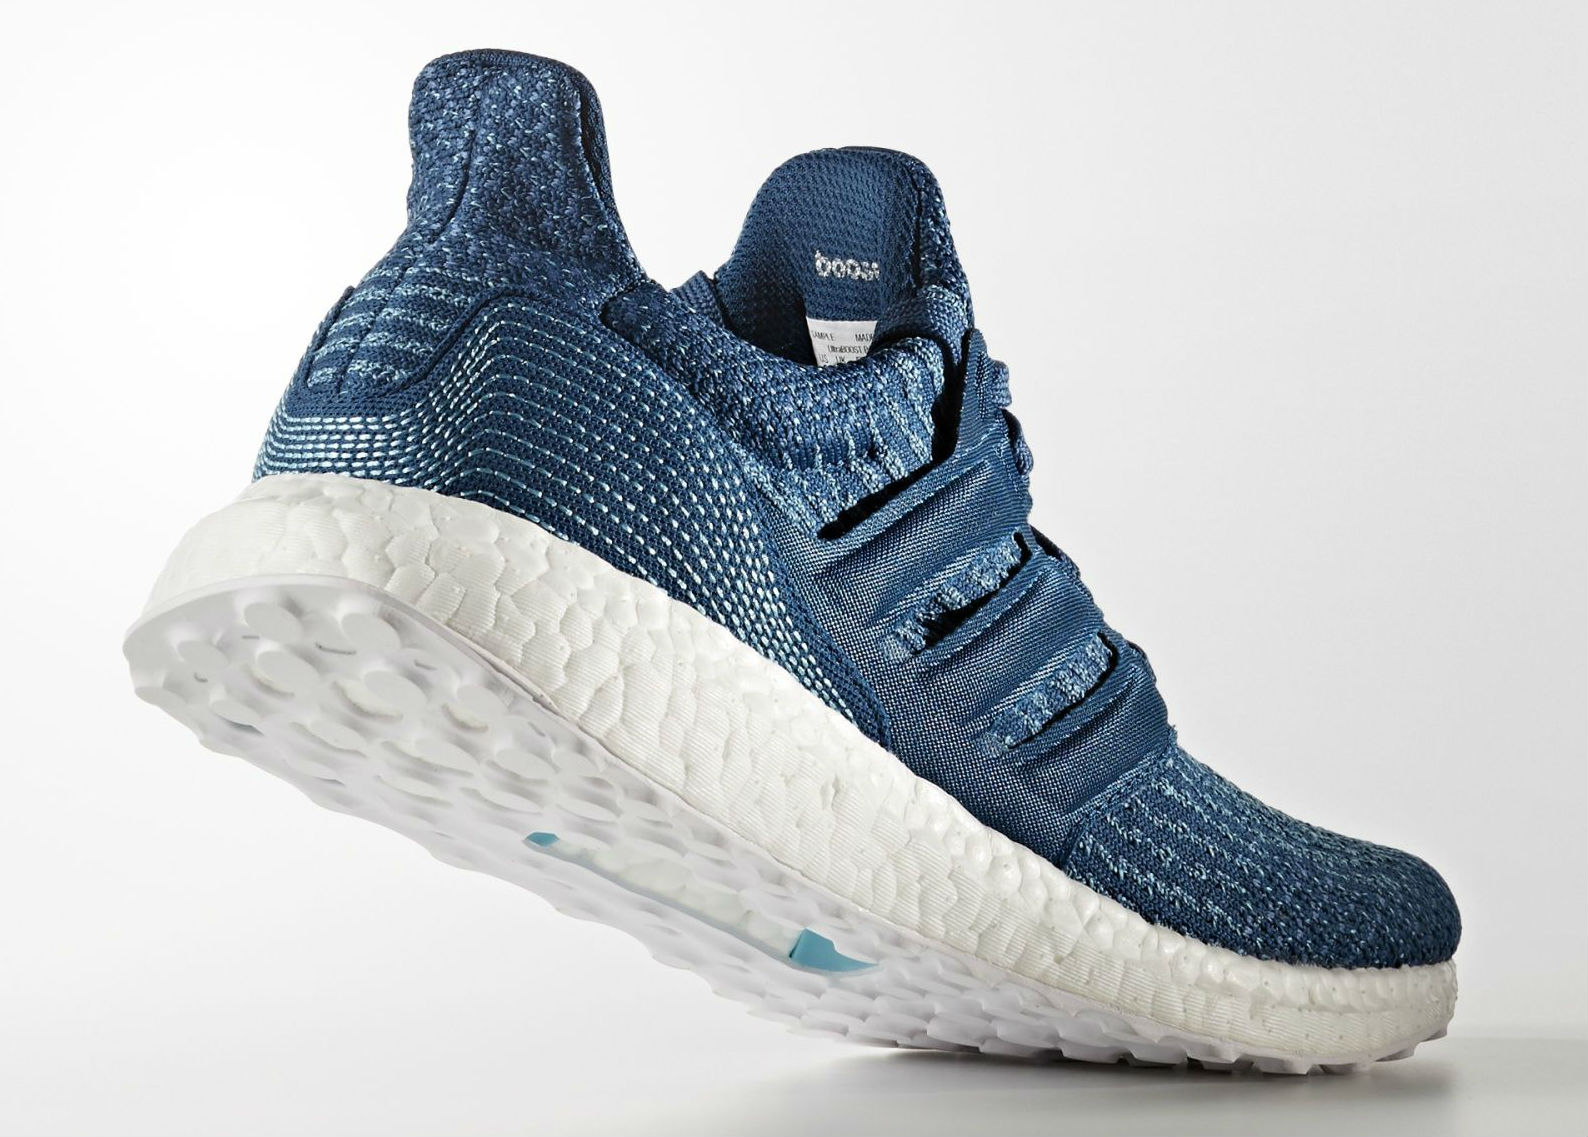 0ccbbcad438f Adidas Originals x Parley Ultraboost 4.0 Legend Ink Carbon